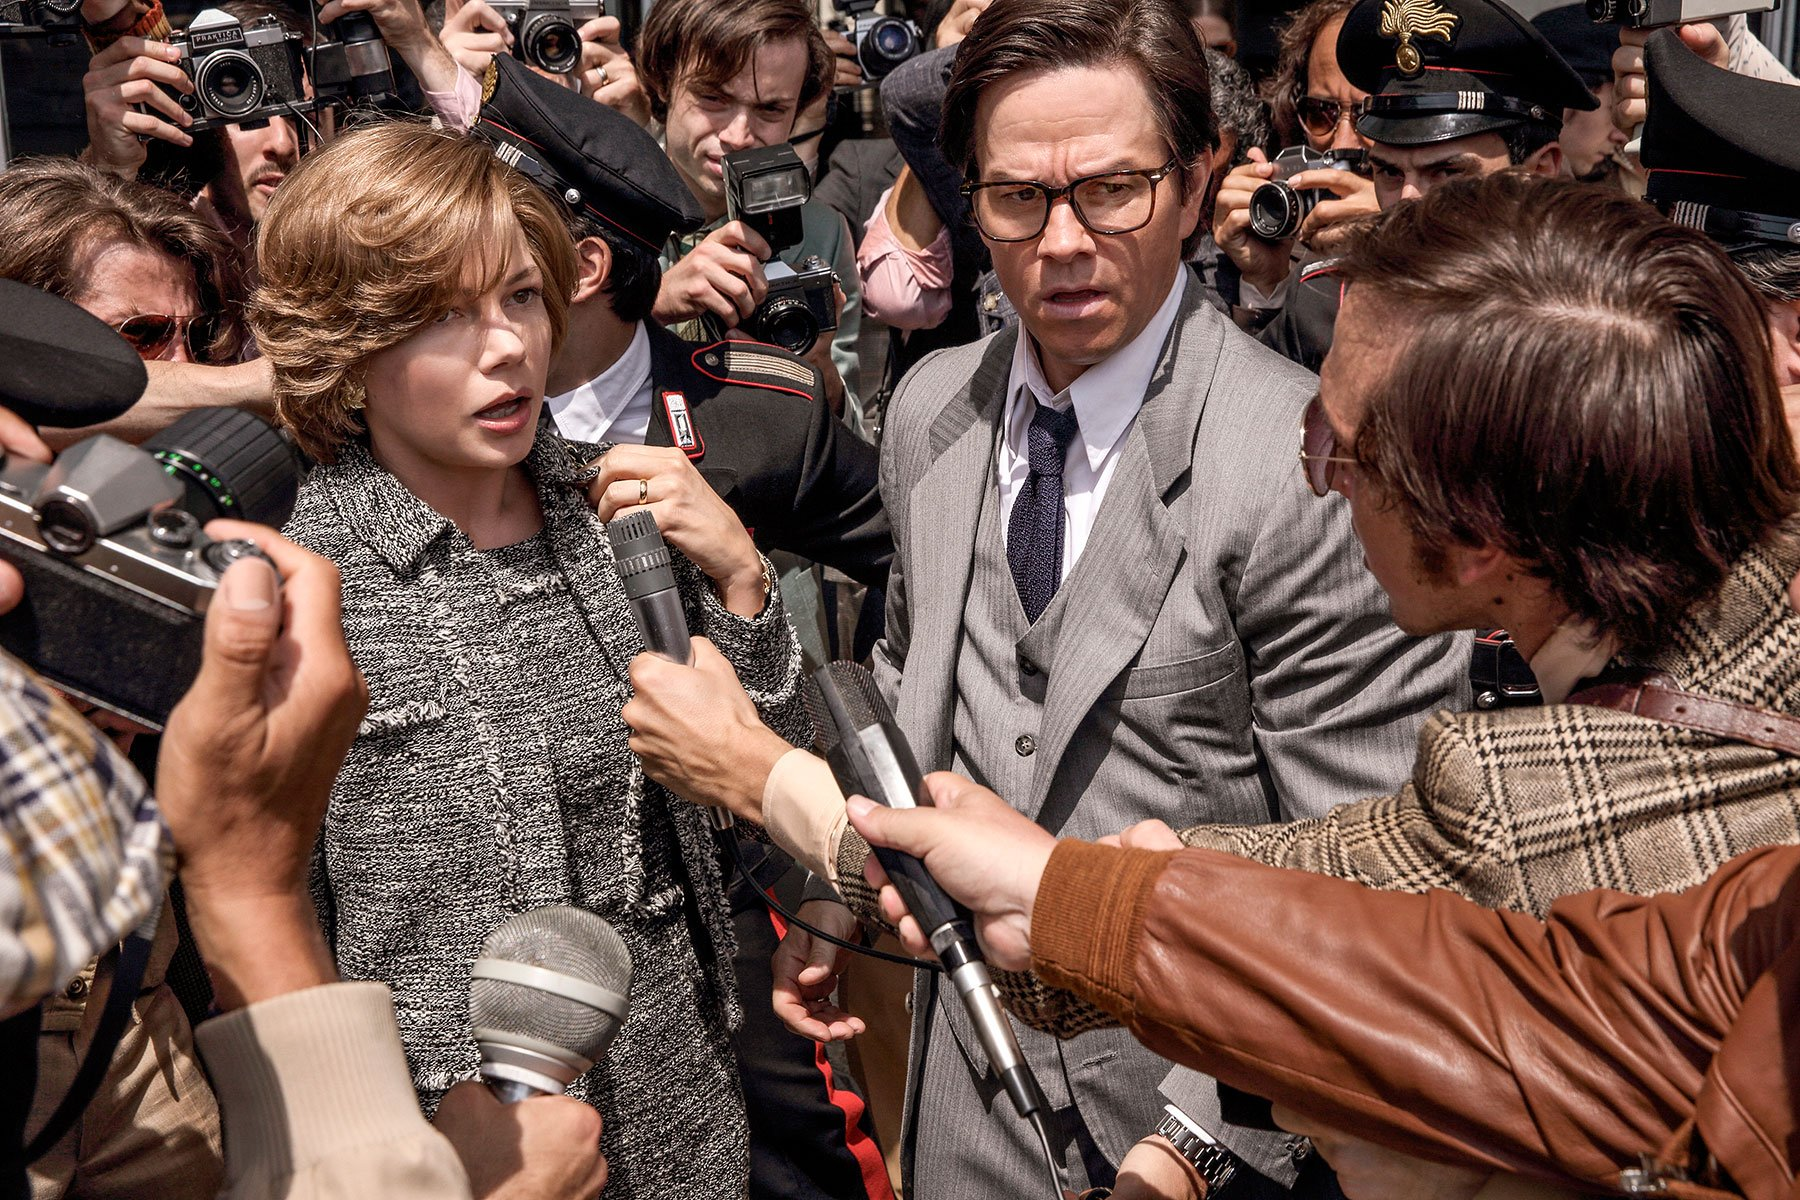 Mark Wahlberg reportedly made 1500 times what Michelle Williams did for All the Money reshoots